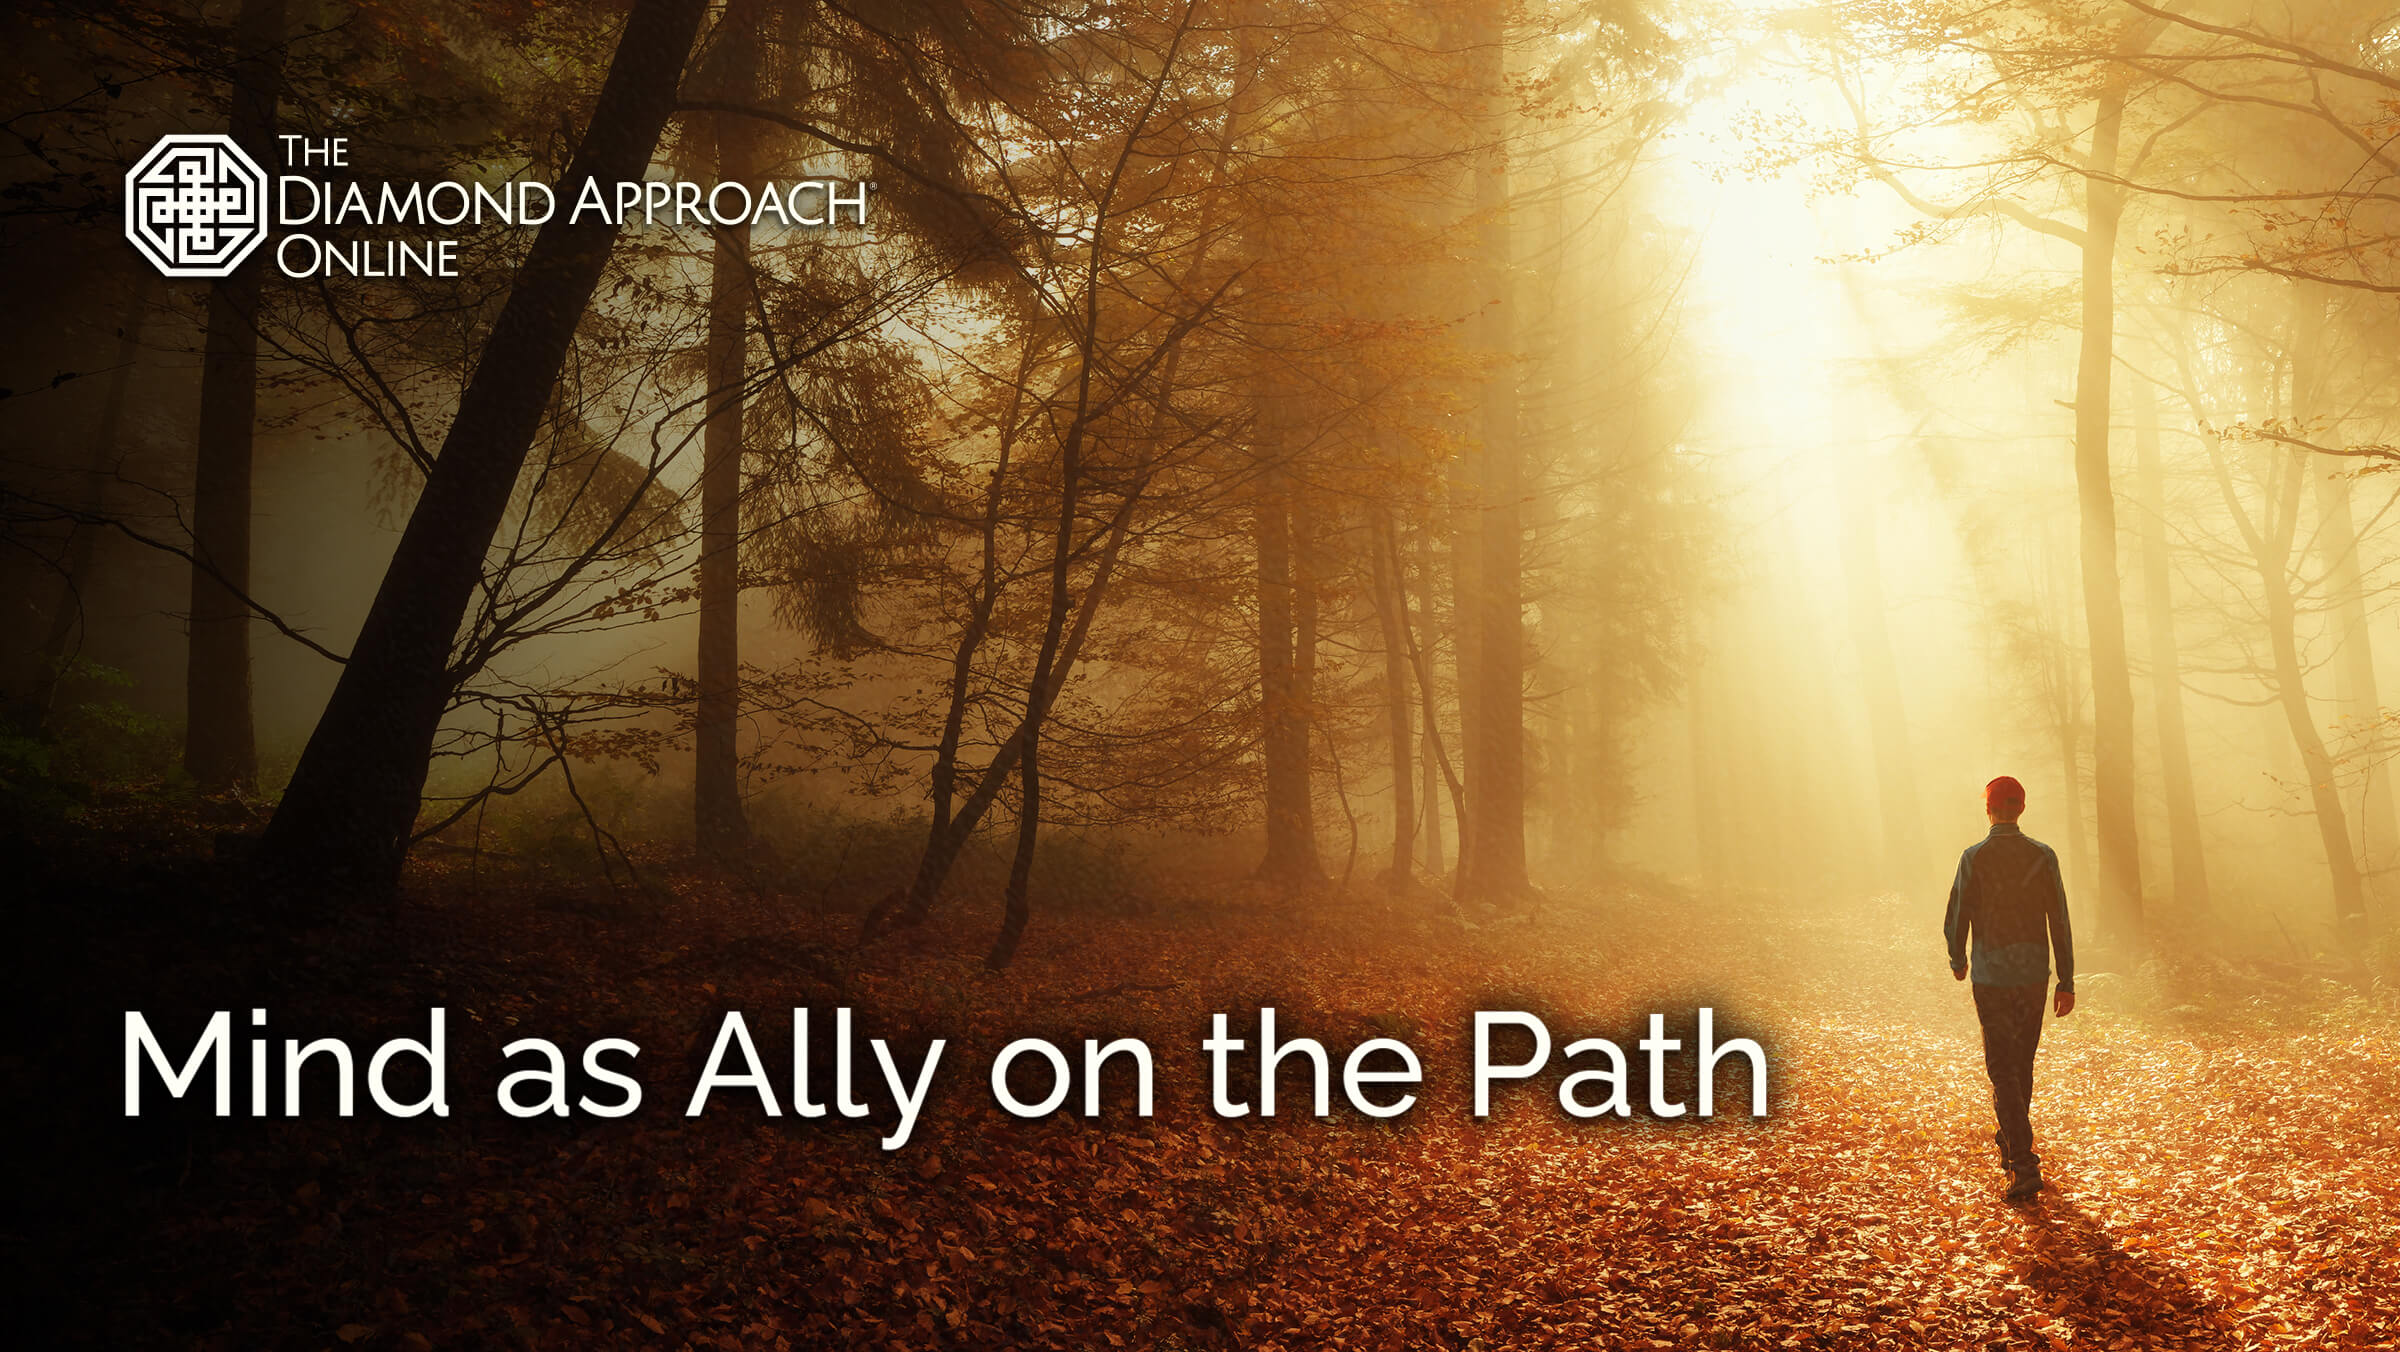 Mind as Ally on the Path